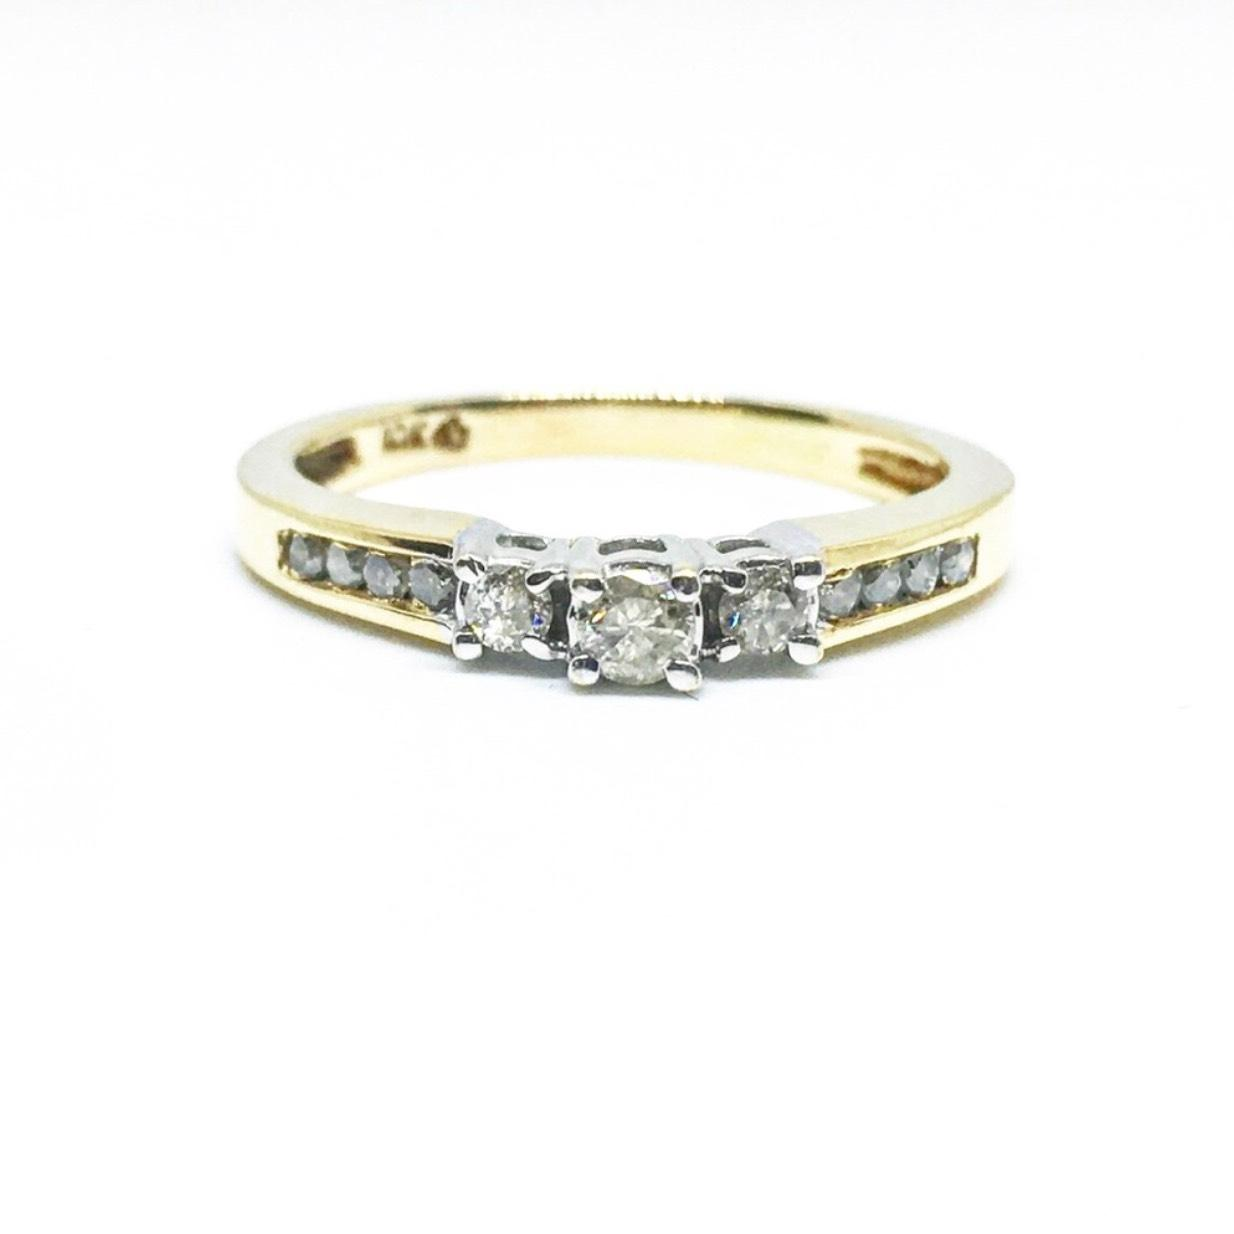 Macys Bridal Jewelry Accessories Up to 90 off at Tradesy